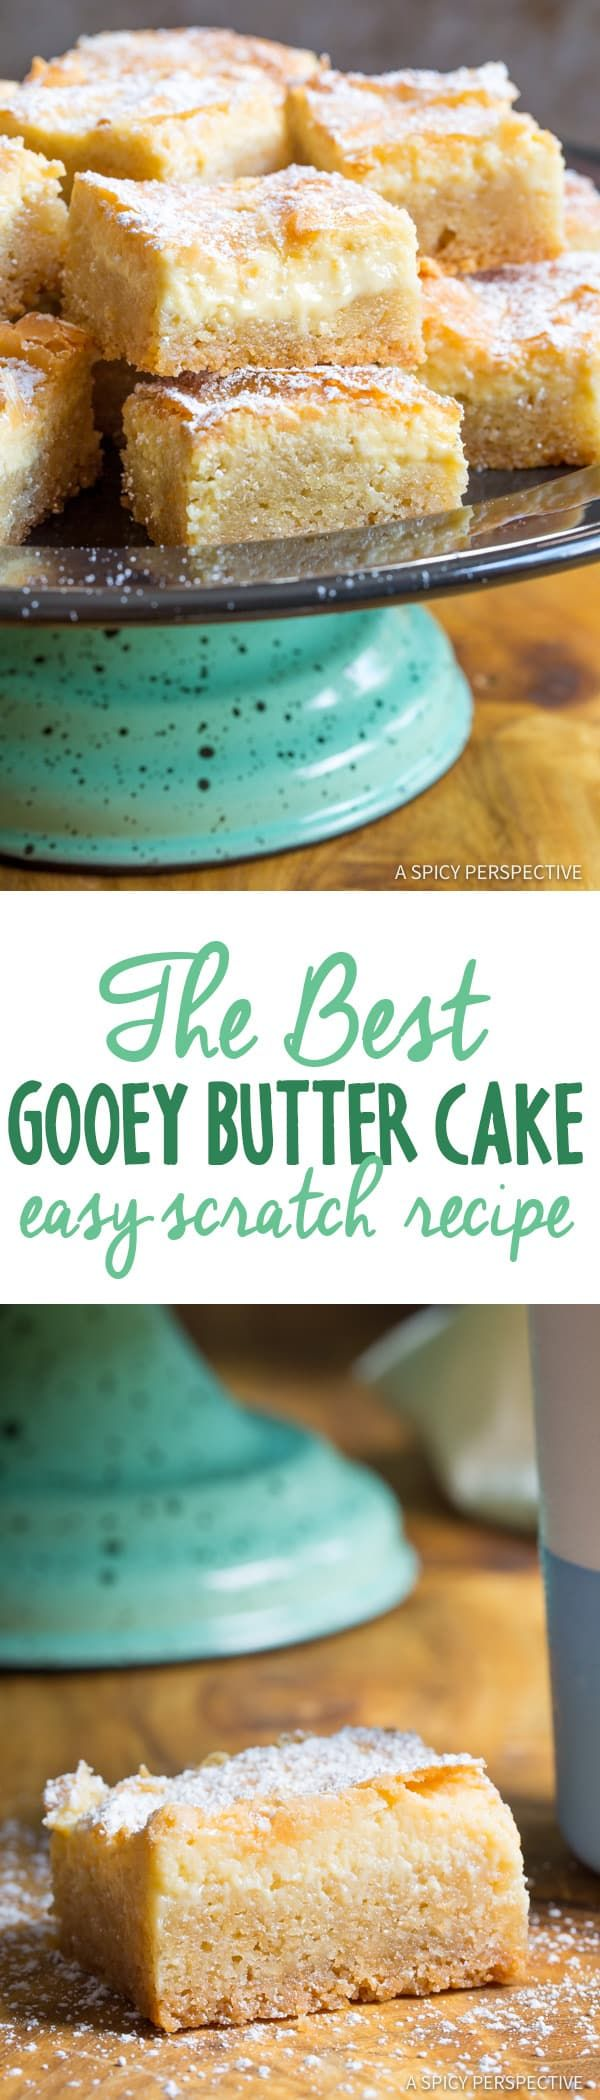 The Best Gooey Butter Cake Recipe (Similar to Chess Squares and Philadelphia Style Cake) #holidays #christmas via @spicyperspectiv